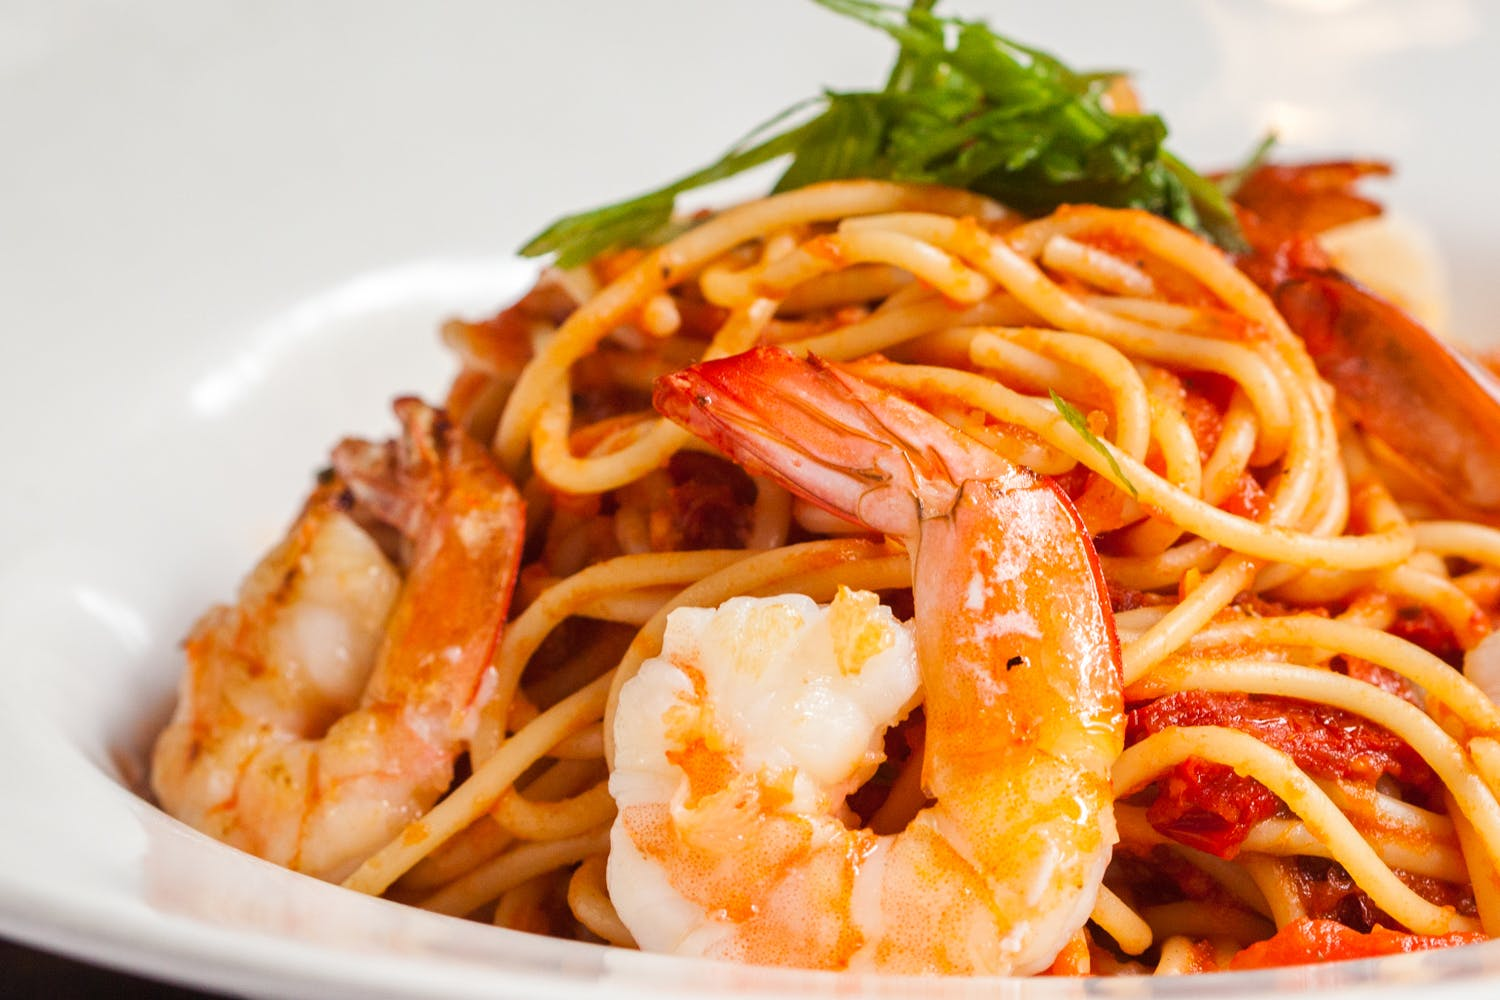 a plate of spaghetti and shrimp